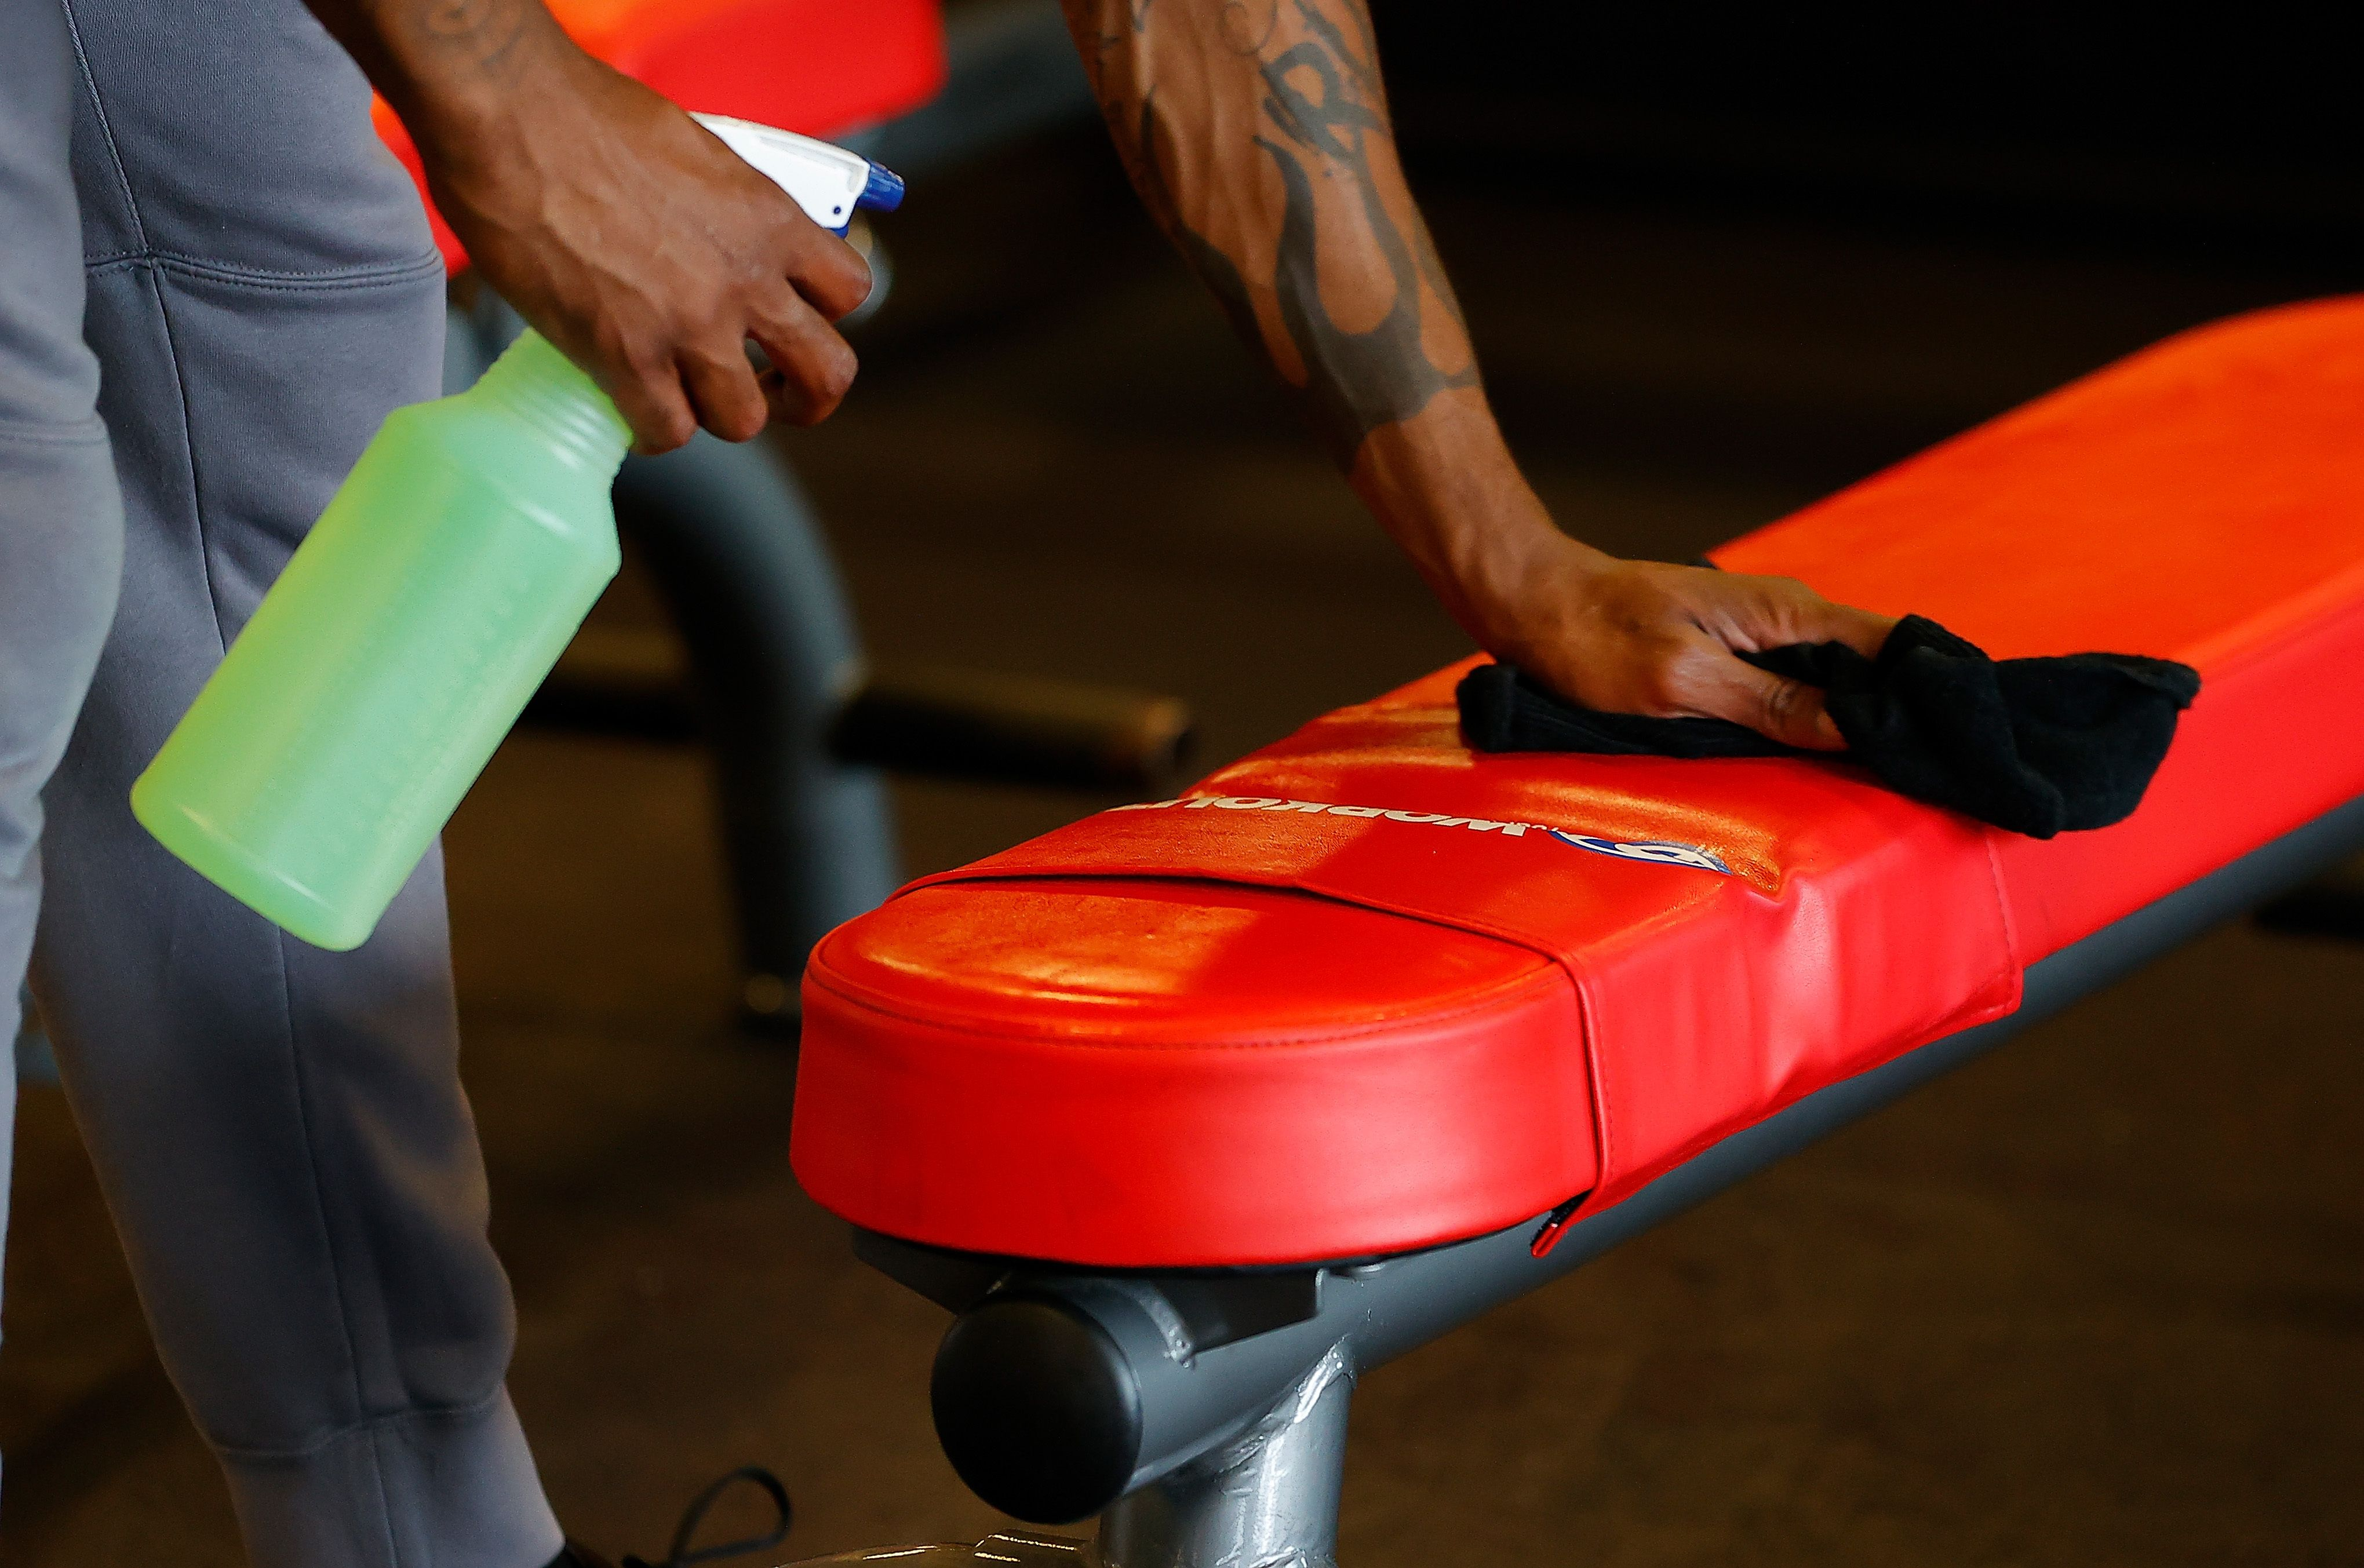 Army Vet Valentino Murray cleans a bench before using it at Workout Anytime Powder Springs gym on April 24, 2020, in Powder S